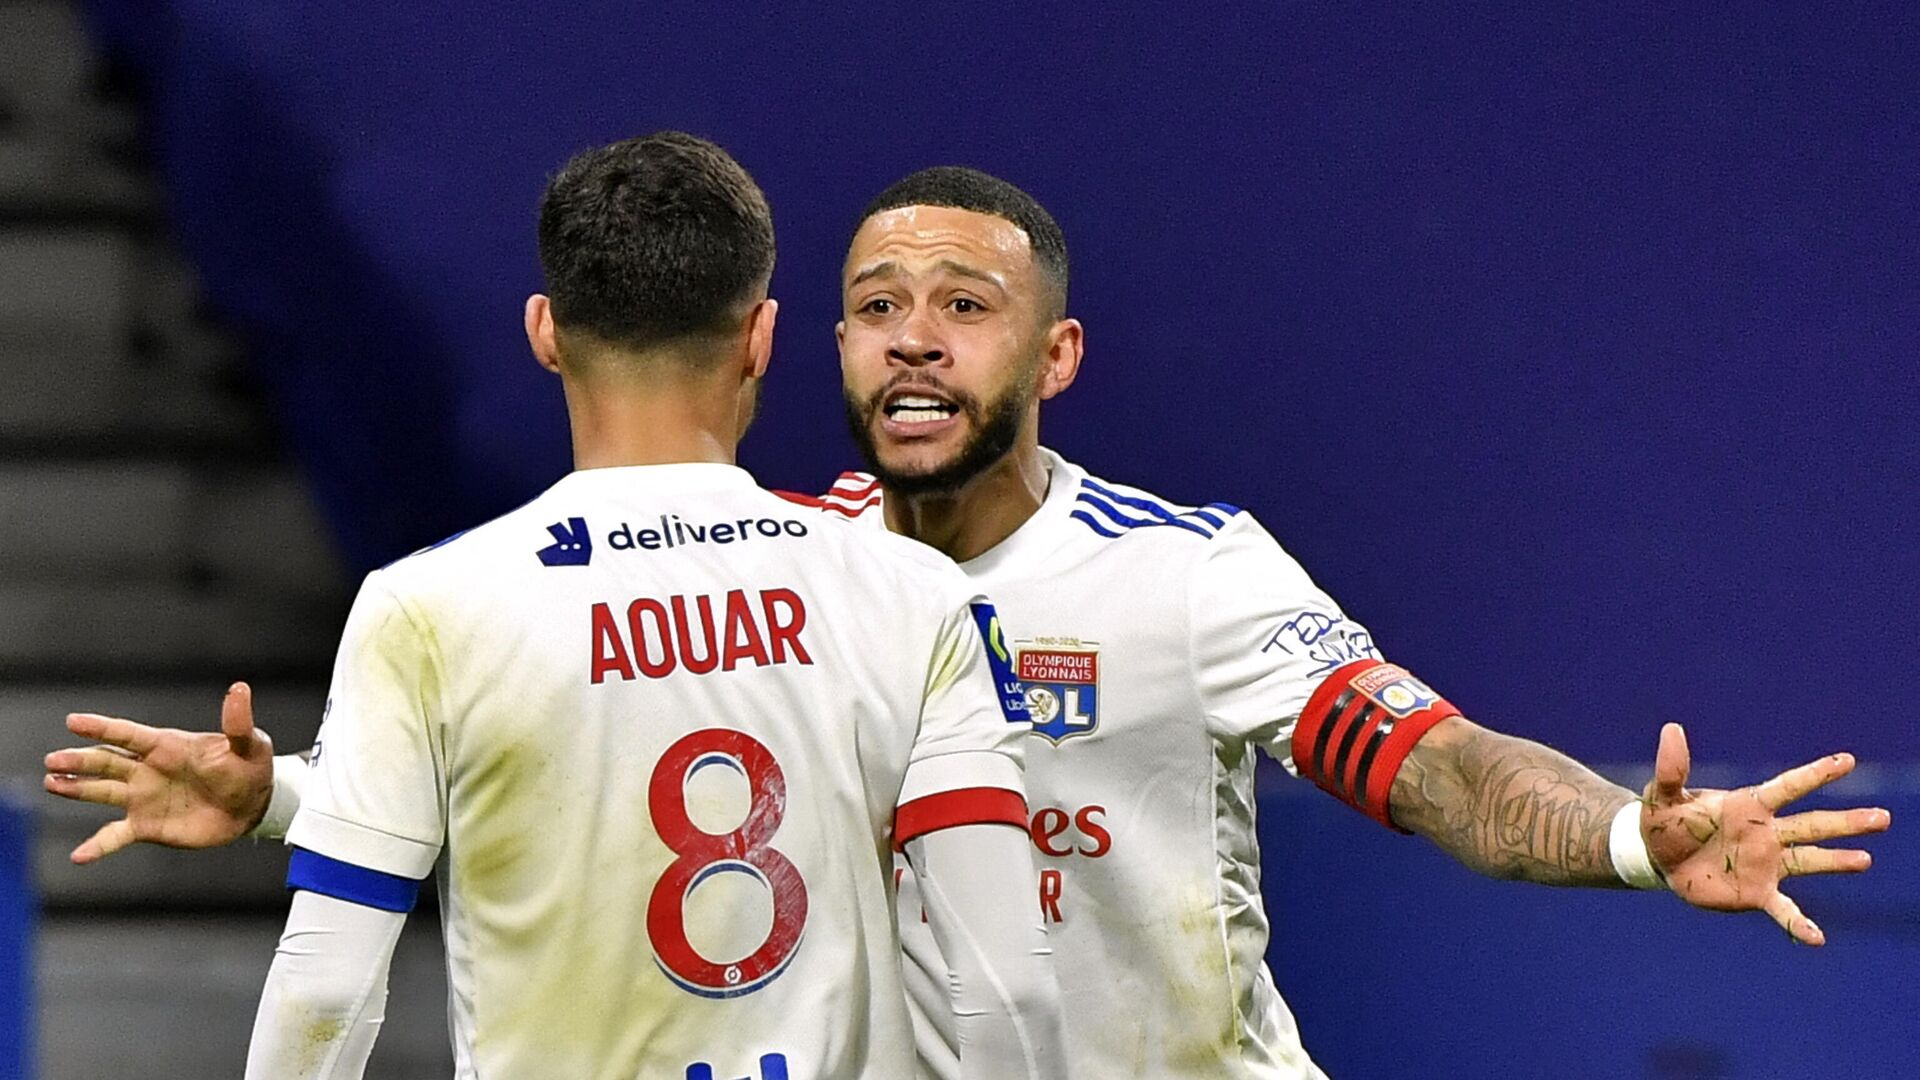 Lyon's French midfielder Houssem Aouar (L) celebrates with Lyon's Dutch forward Memphis Depay after scoring during the French L1 football match between Olympique Lyonnais and Stade Rennais Football Club at the Groupama Stadium in Decines-Charpieu, near Lyon, central-eastern France on March 3, 2021. (Photo by PHILIPPE DESMAZES / AFP) - РИА Новости, 1920, 03.03.2021